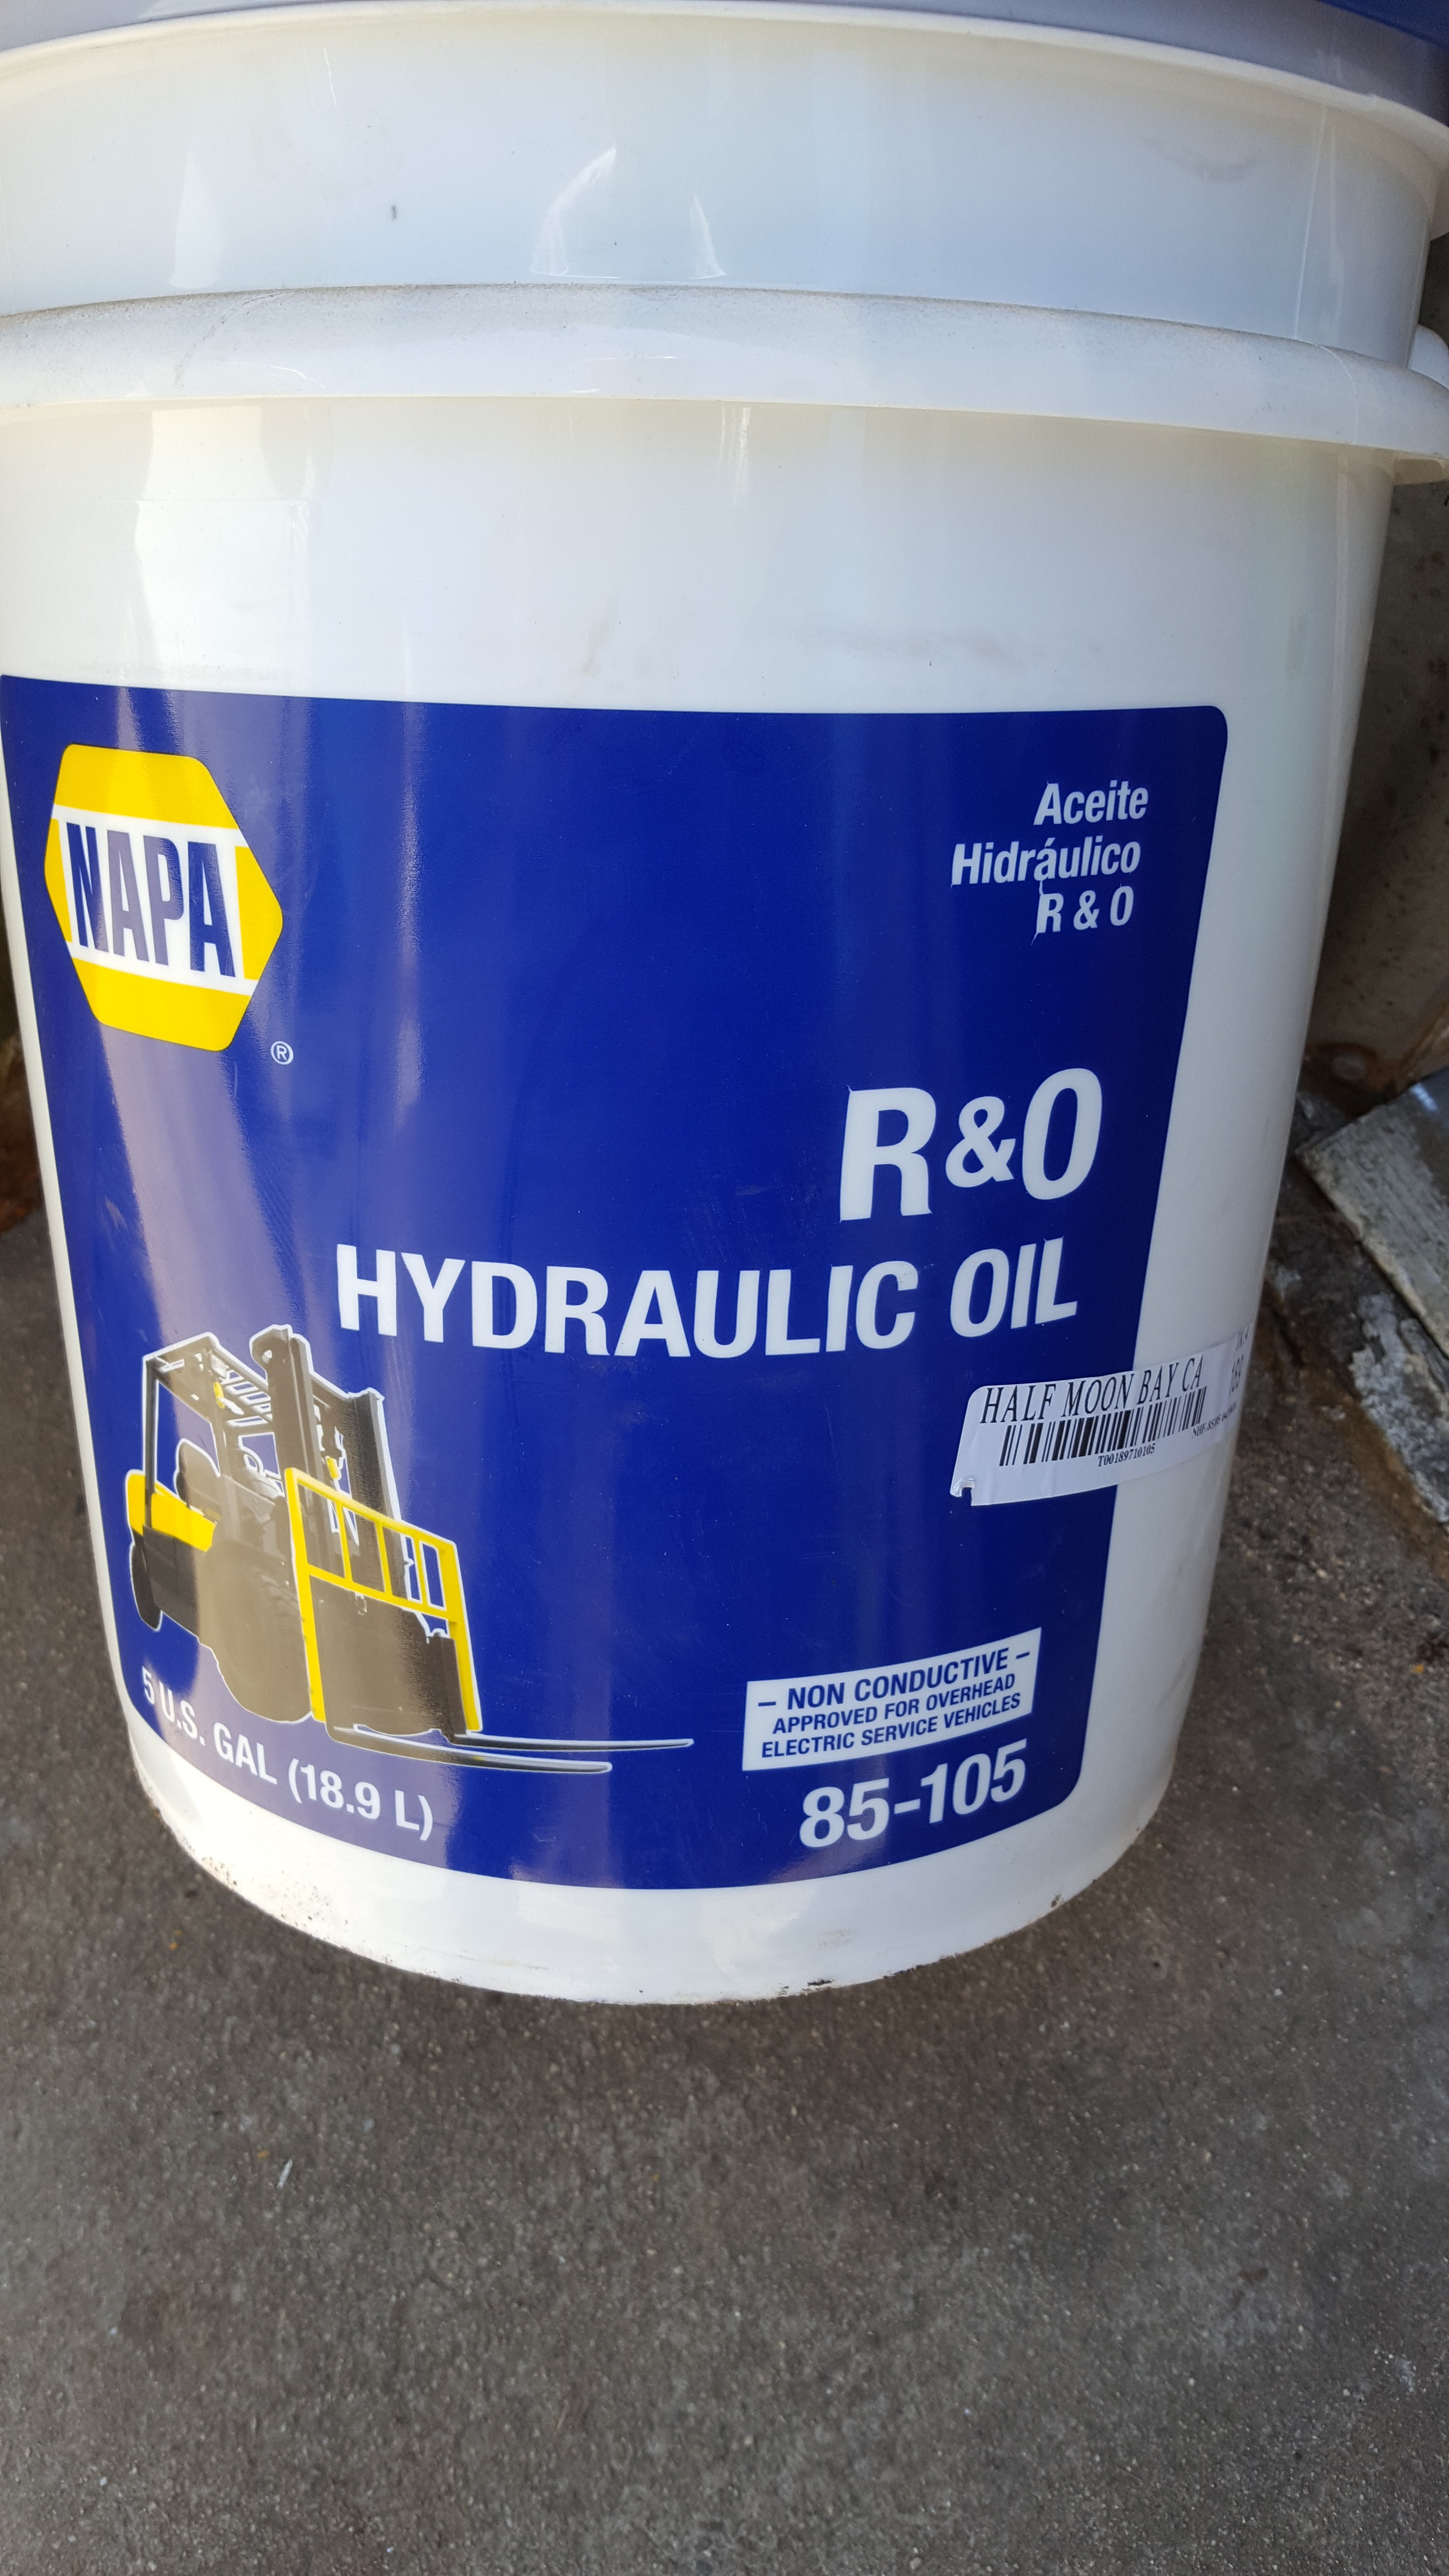 Need oil for both the hydraulic system and Transmission for